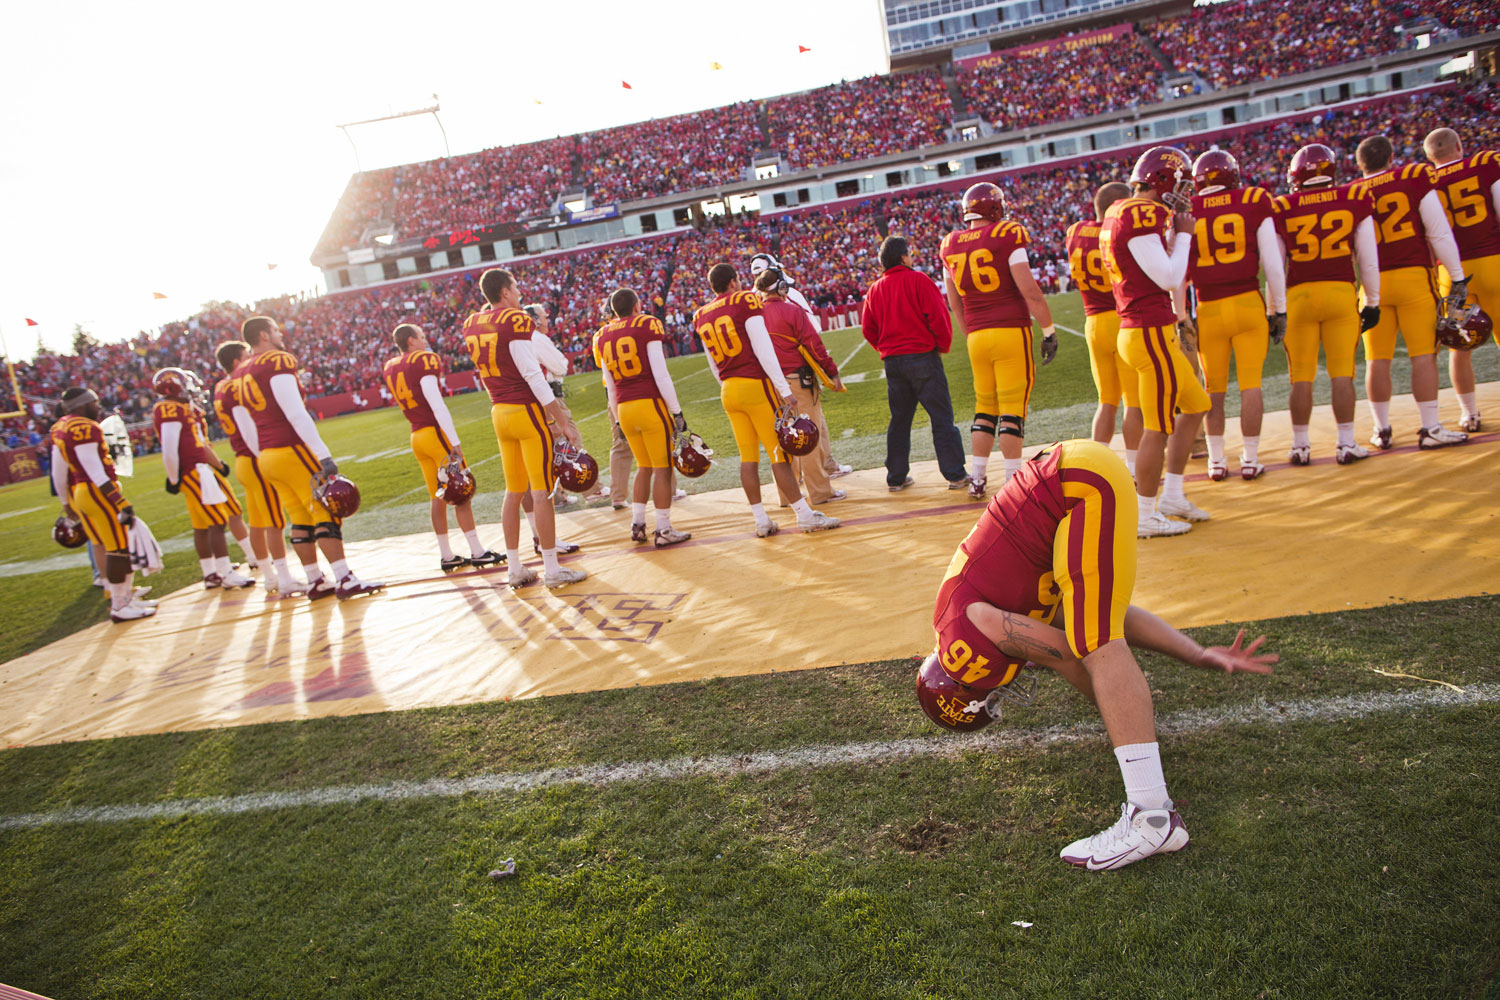 Iowa State's long snapper readies himself along the sidelines in preparation for a November 2010 game against the Huskers in Ames, Iowa.